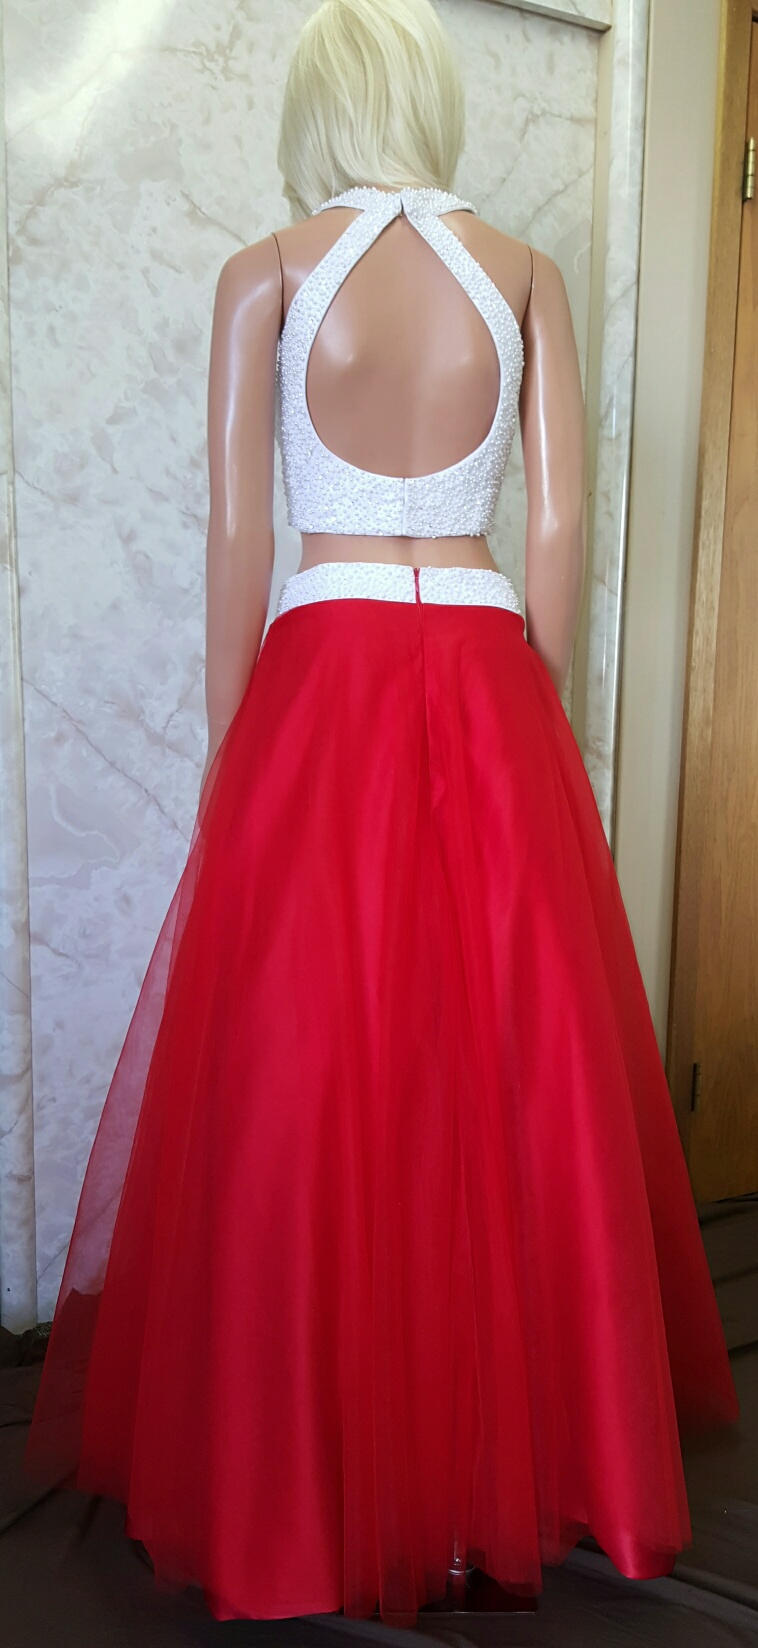 crop top & skirt prom dresses